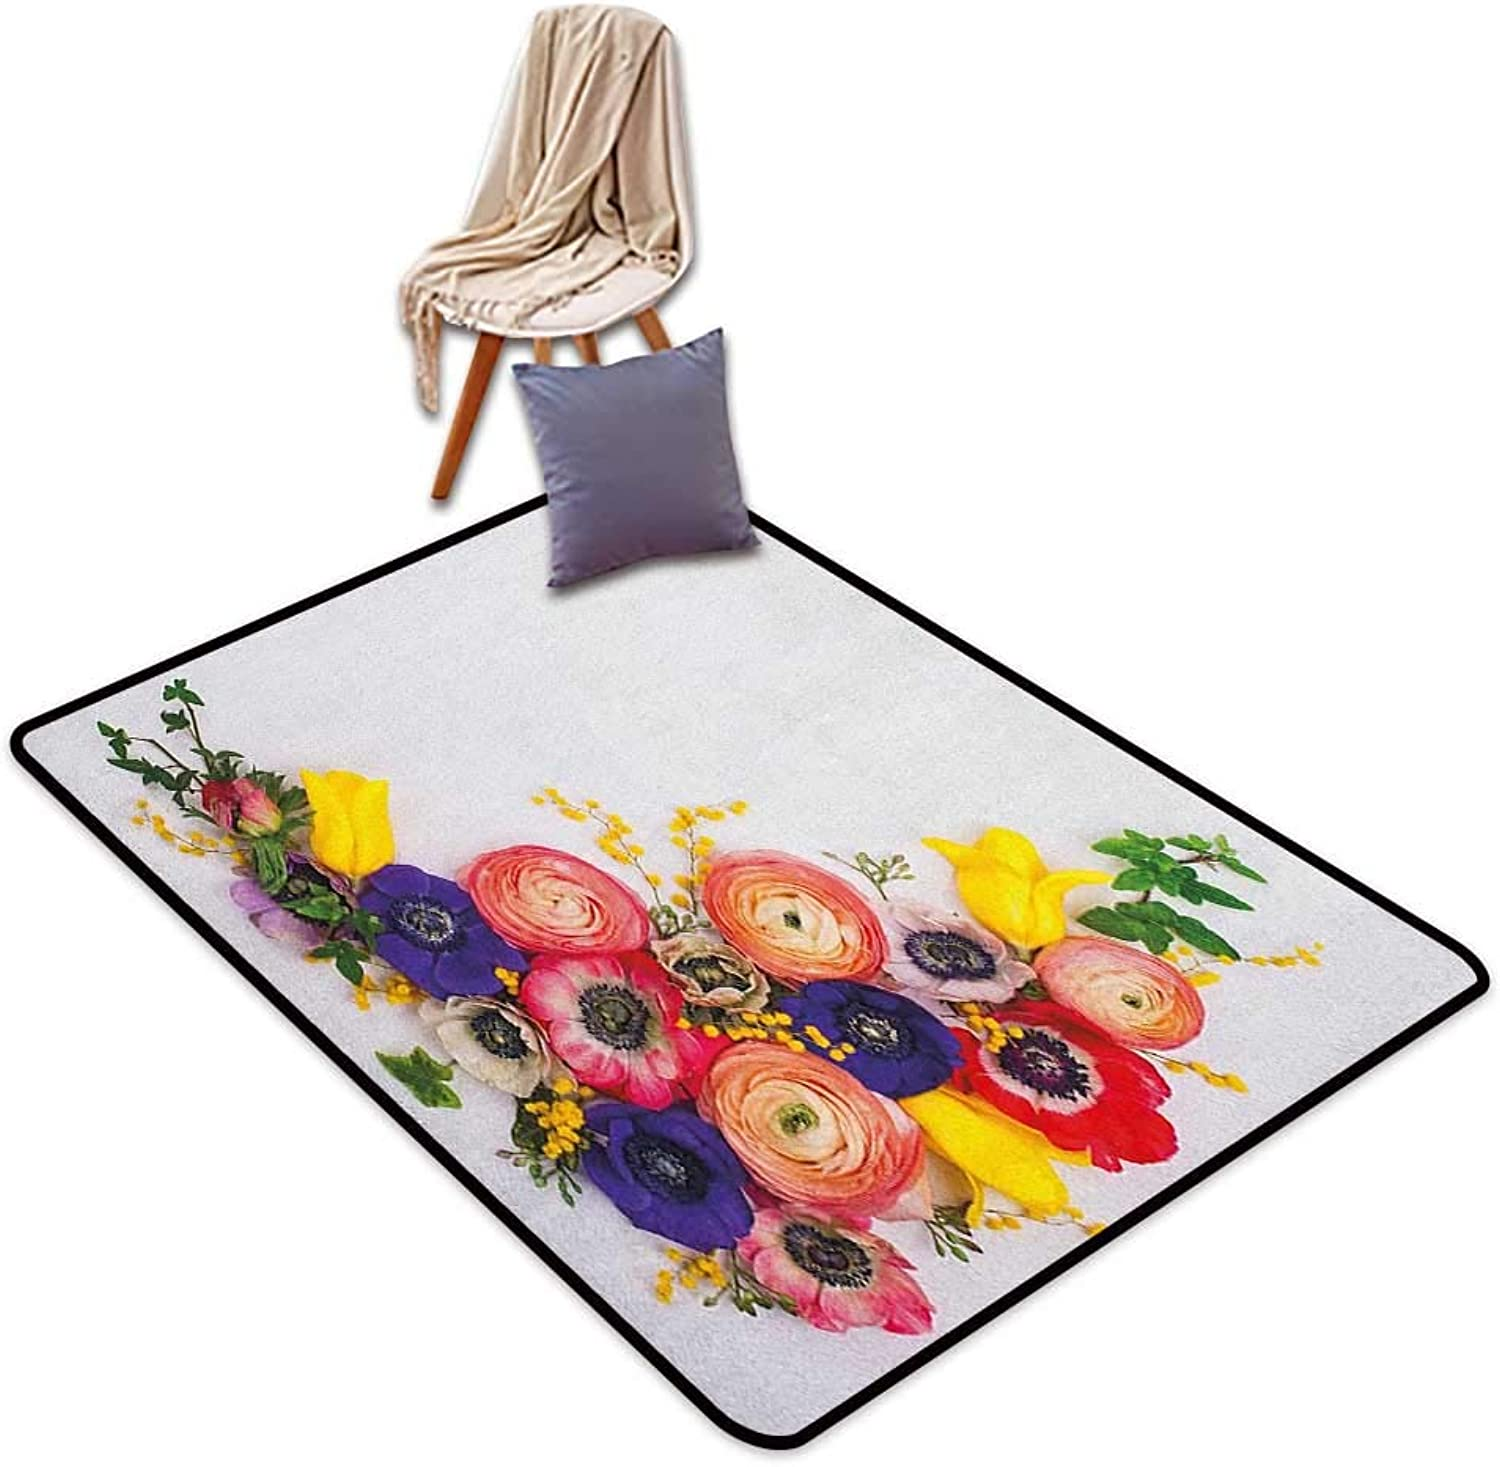 Interior Door Rug Bathroom Rug Slip Anemone Flower Festive Floral Composition with English pinks Fresh Buttercups and Herbs Door Rug Increase W6'xL8'